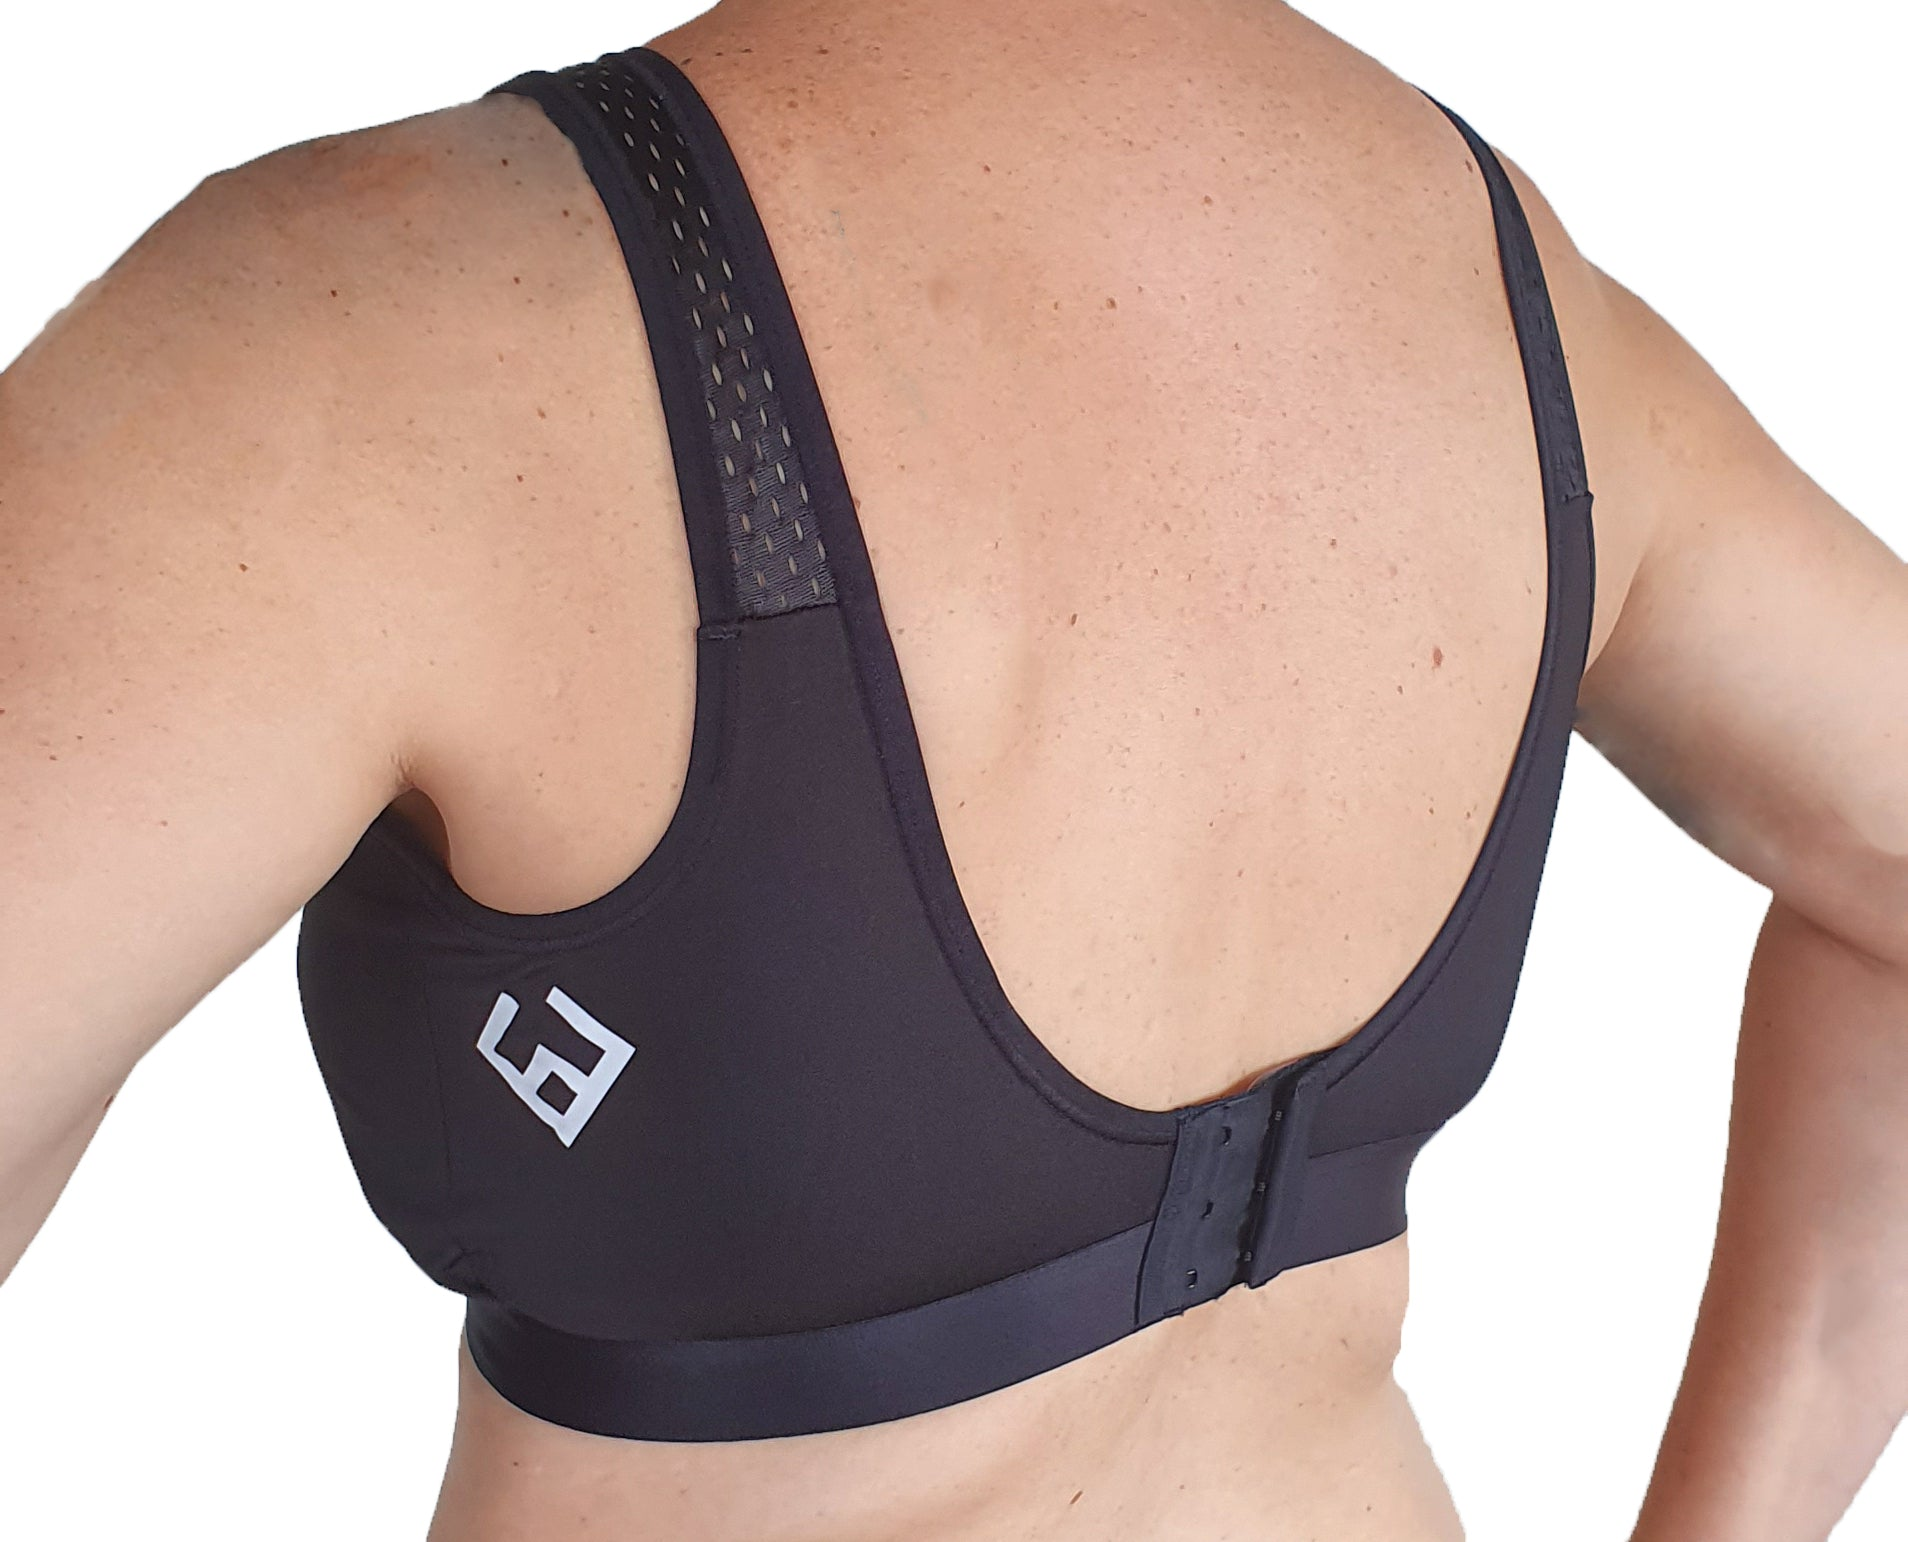 Images shows bra on a person. This is the XL bra size which has hook back fastening.